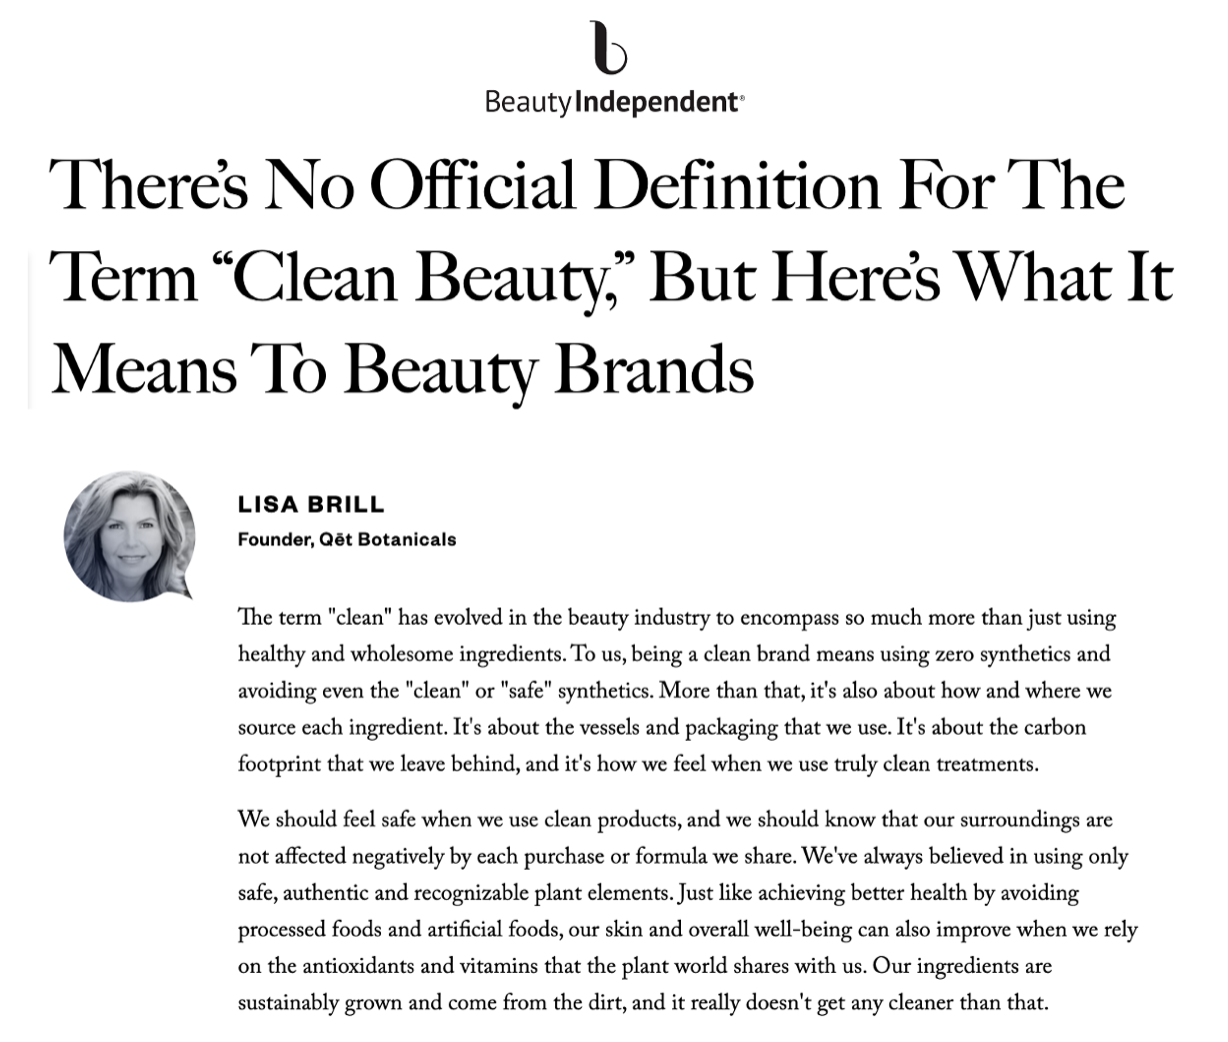 Qet-Botanicals-Founder-Lisa-Brill-Beauty-Independent-Clean-Beauty-Article